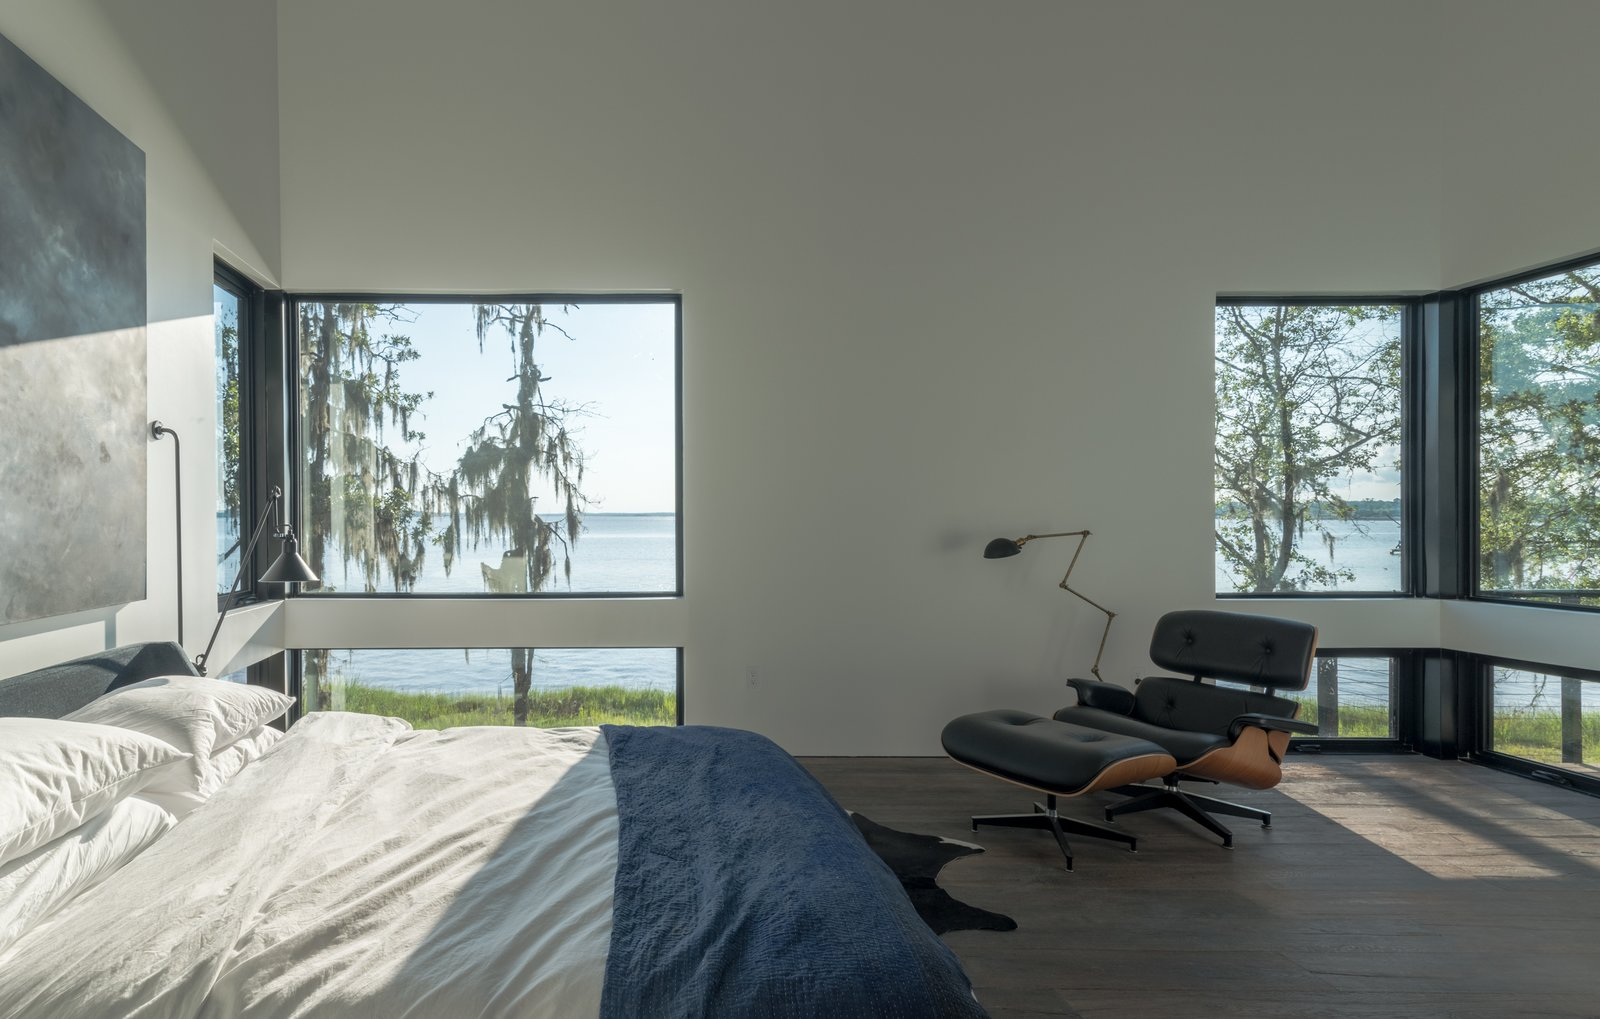 Tagged: Bedroom. Lakefront by studioMET architects